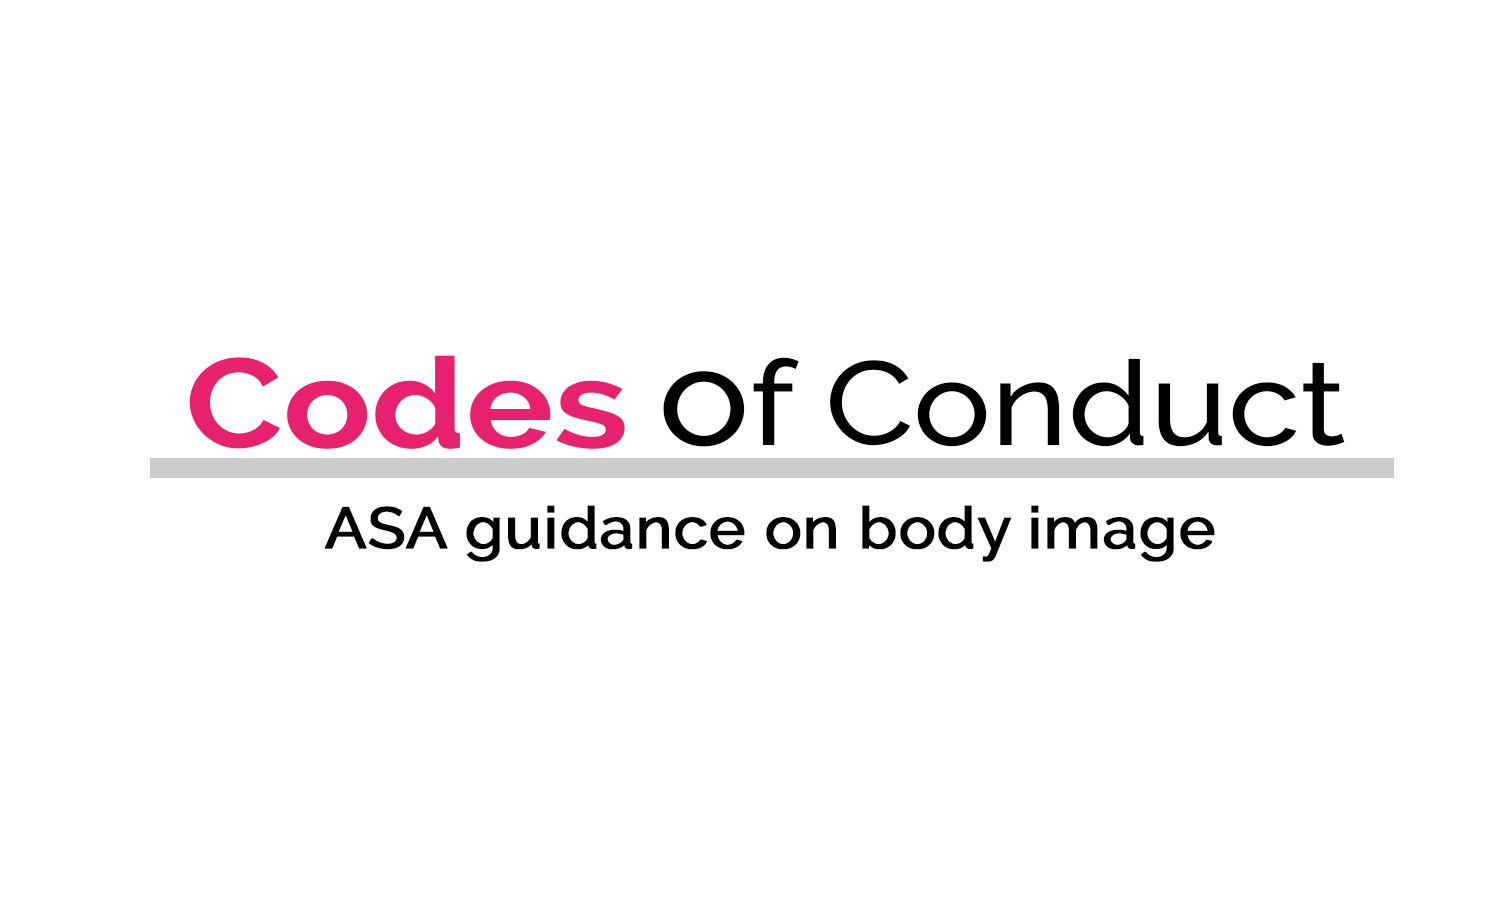 ASA refreshes guidance following International Women's Day